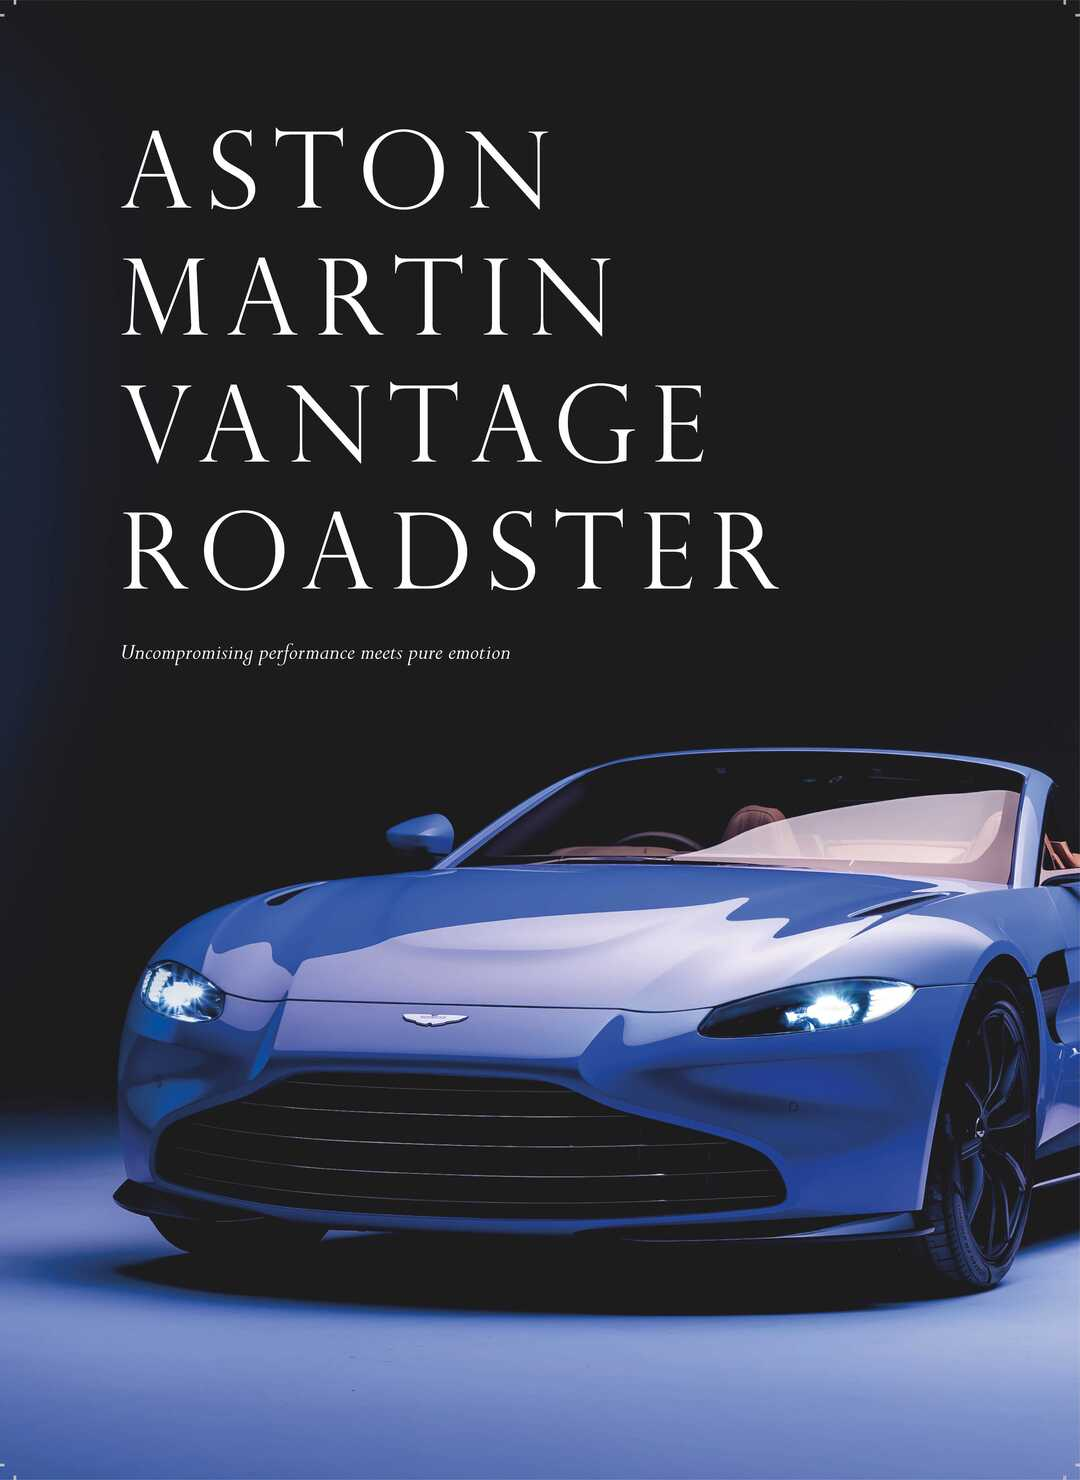 Page 66 of Aston Martin Vantage Roadster